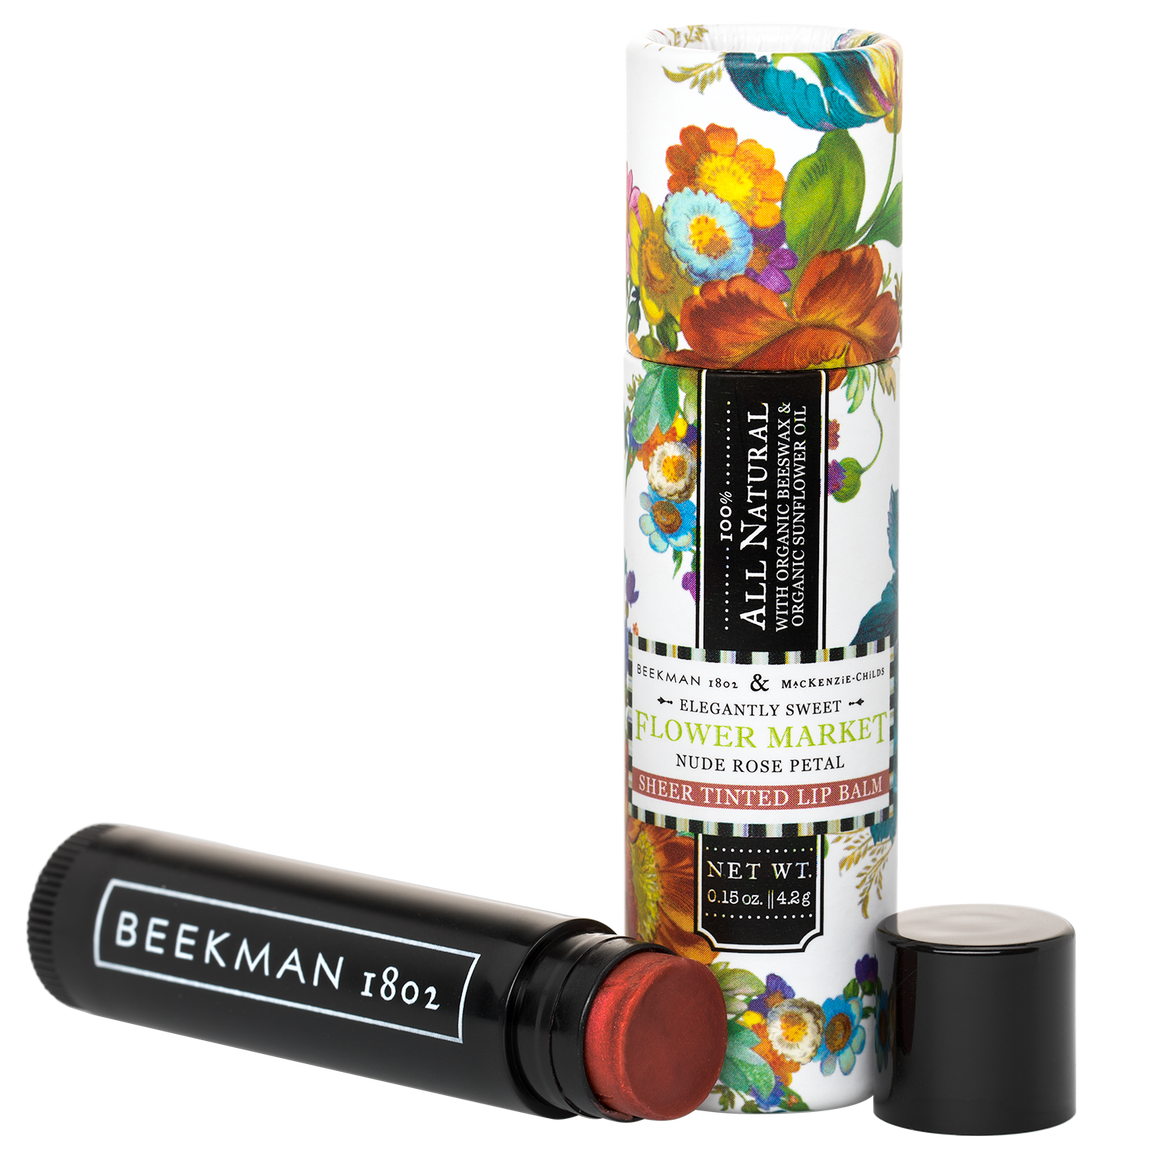 MacKenzie-Childs Flower Market Lip Balm